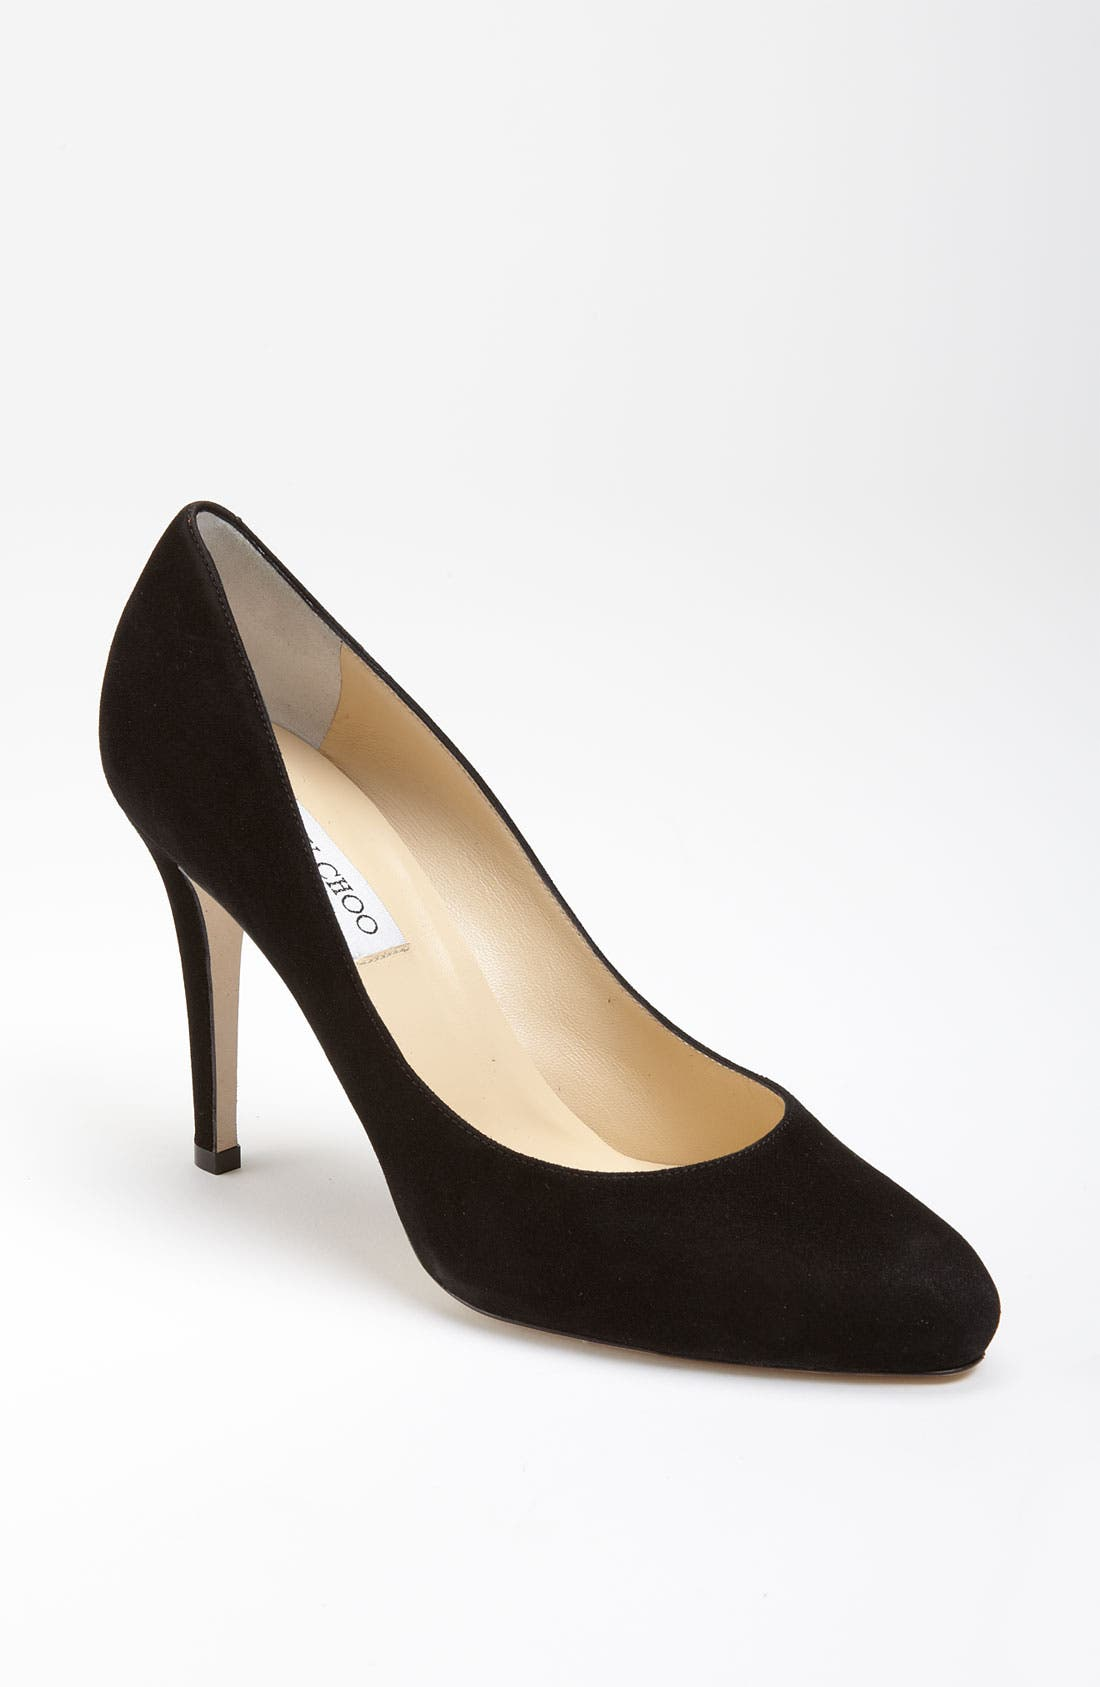 Main Image - Jimmy Choo 'Vikki' Pump